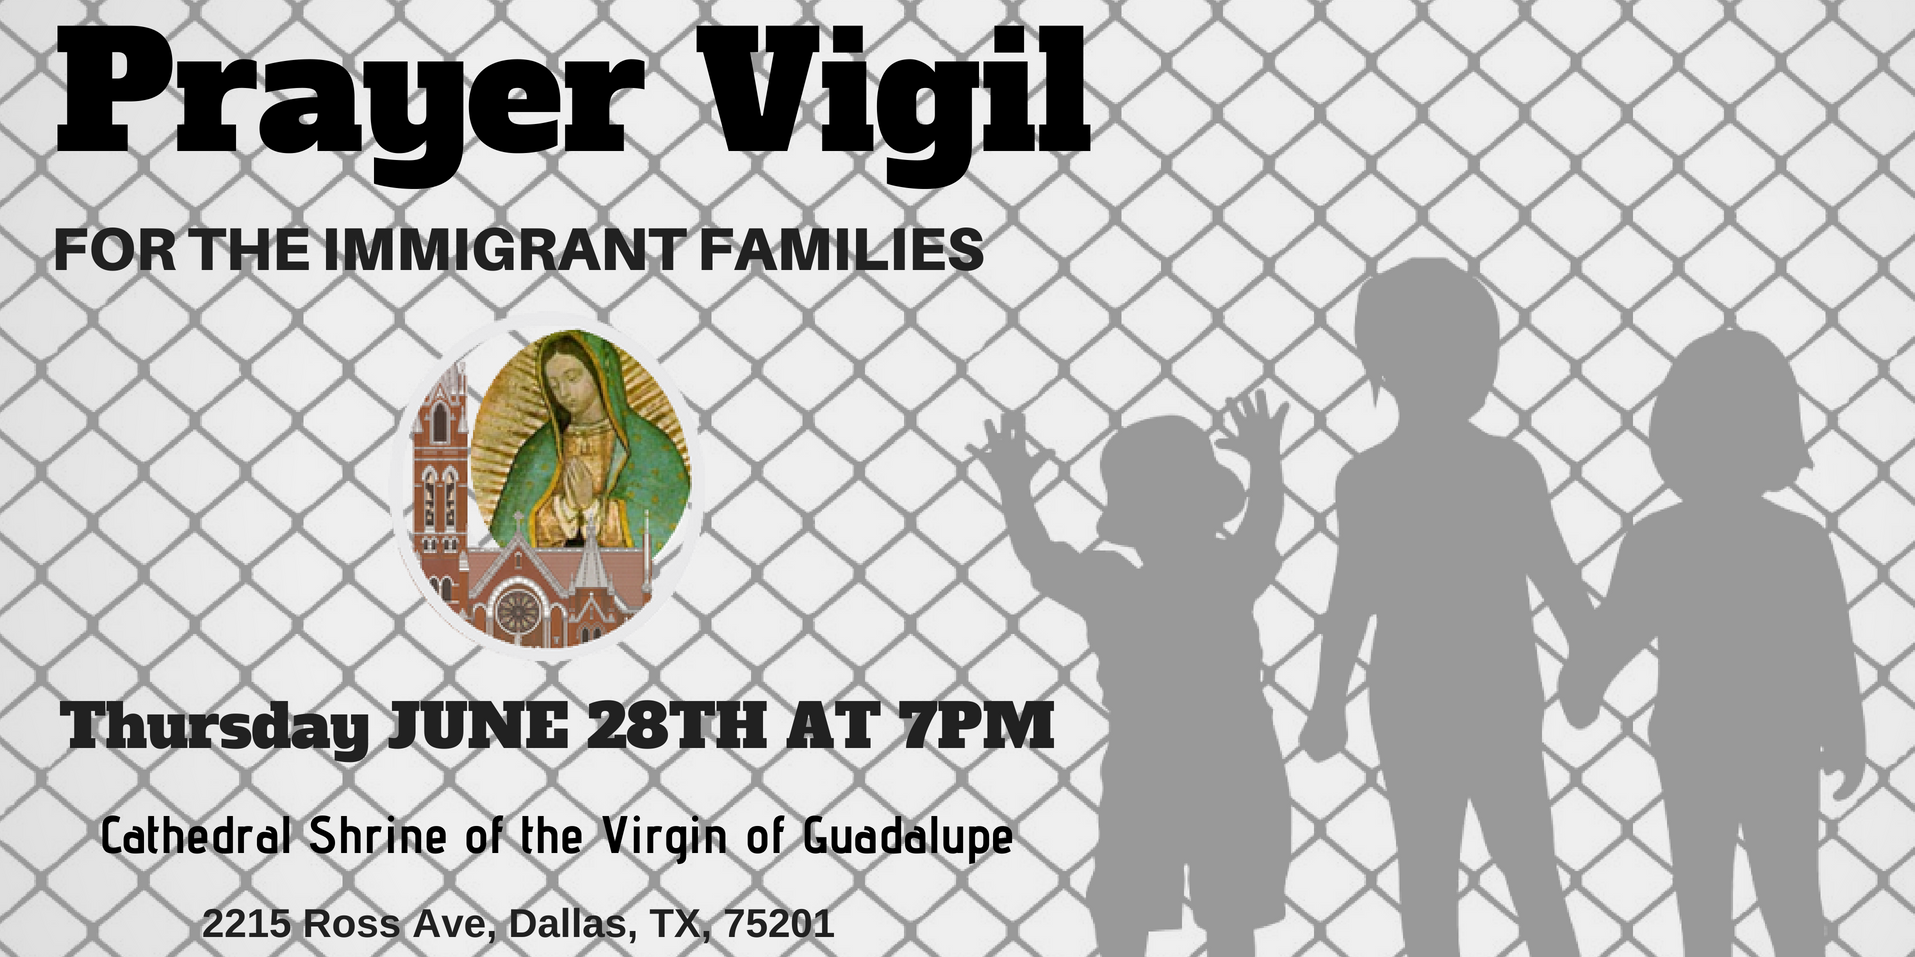 Prayer Vigil for Immigrant Families